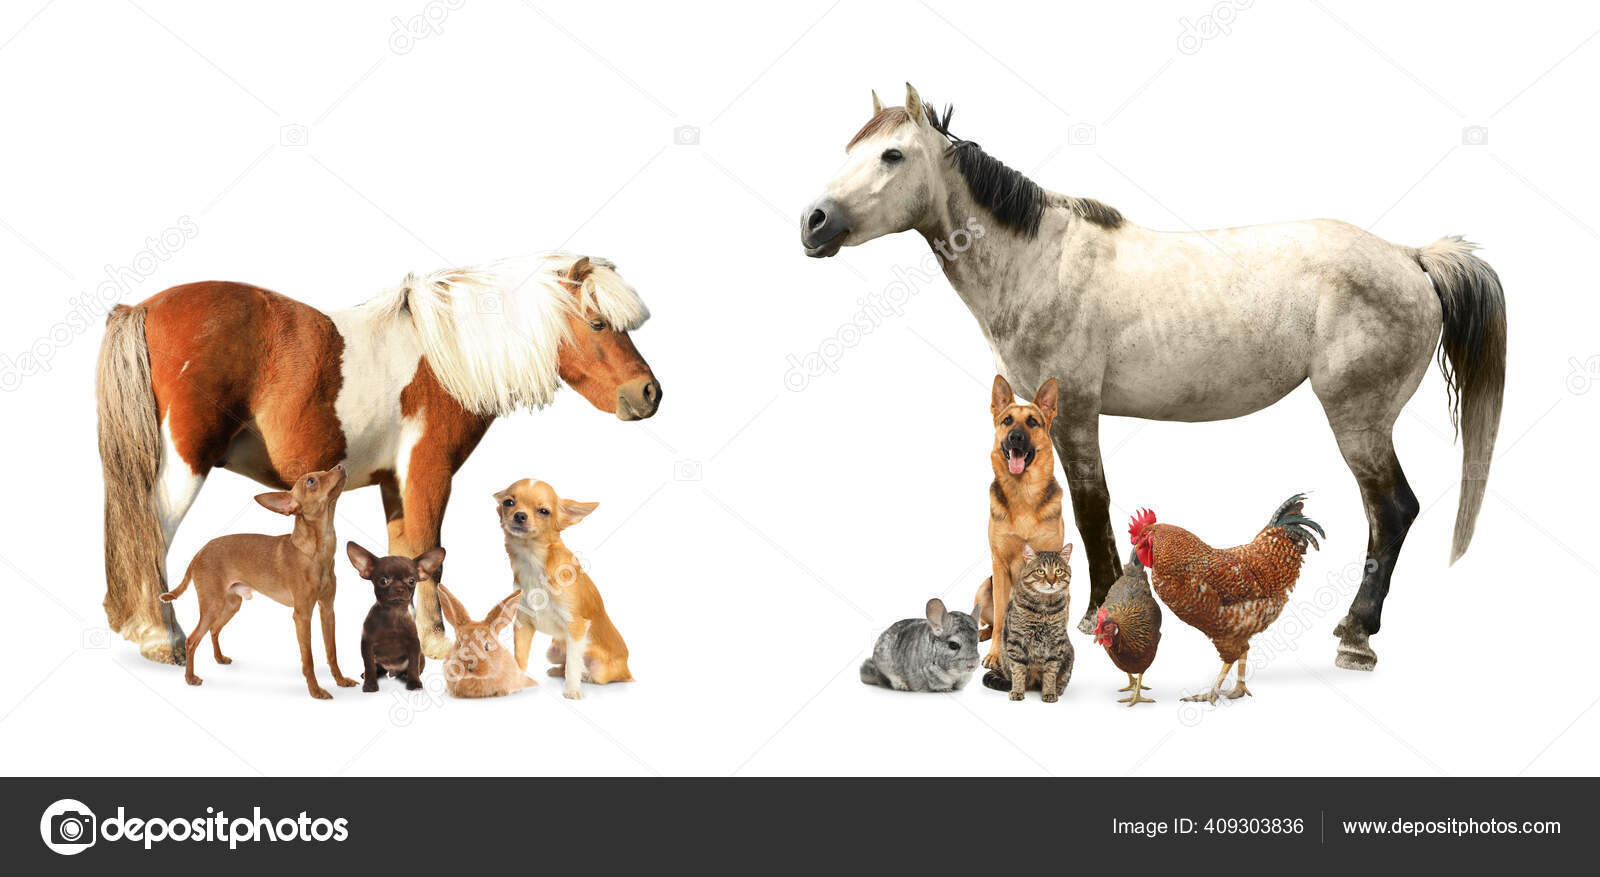 Collage Horse Other Pets White Background Banner Design Stock Photo C Liudmilachernetska Gmail Com 409303836